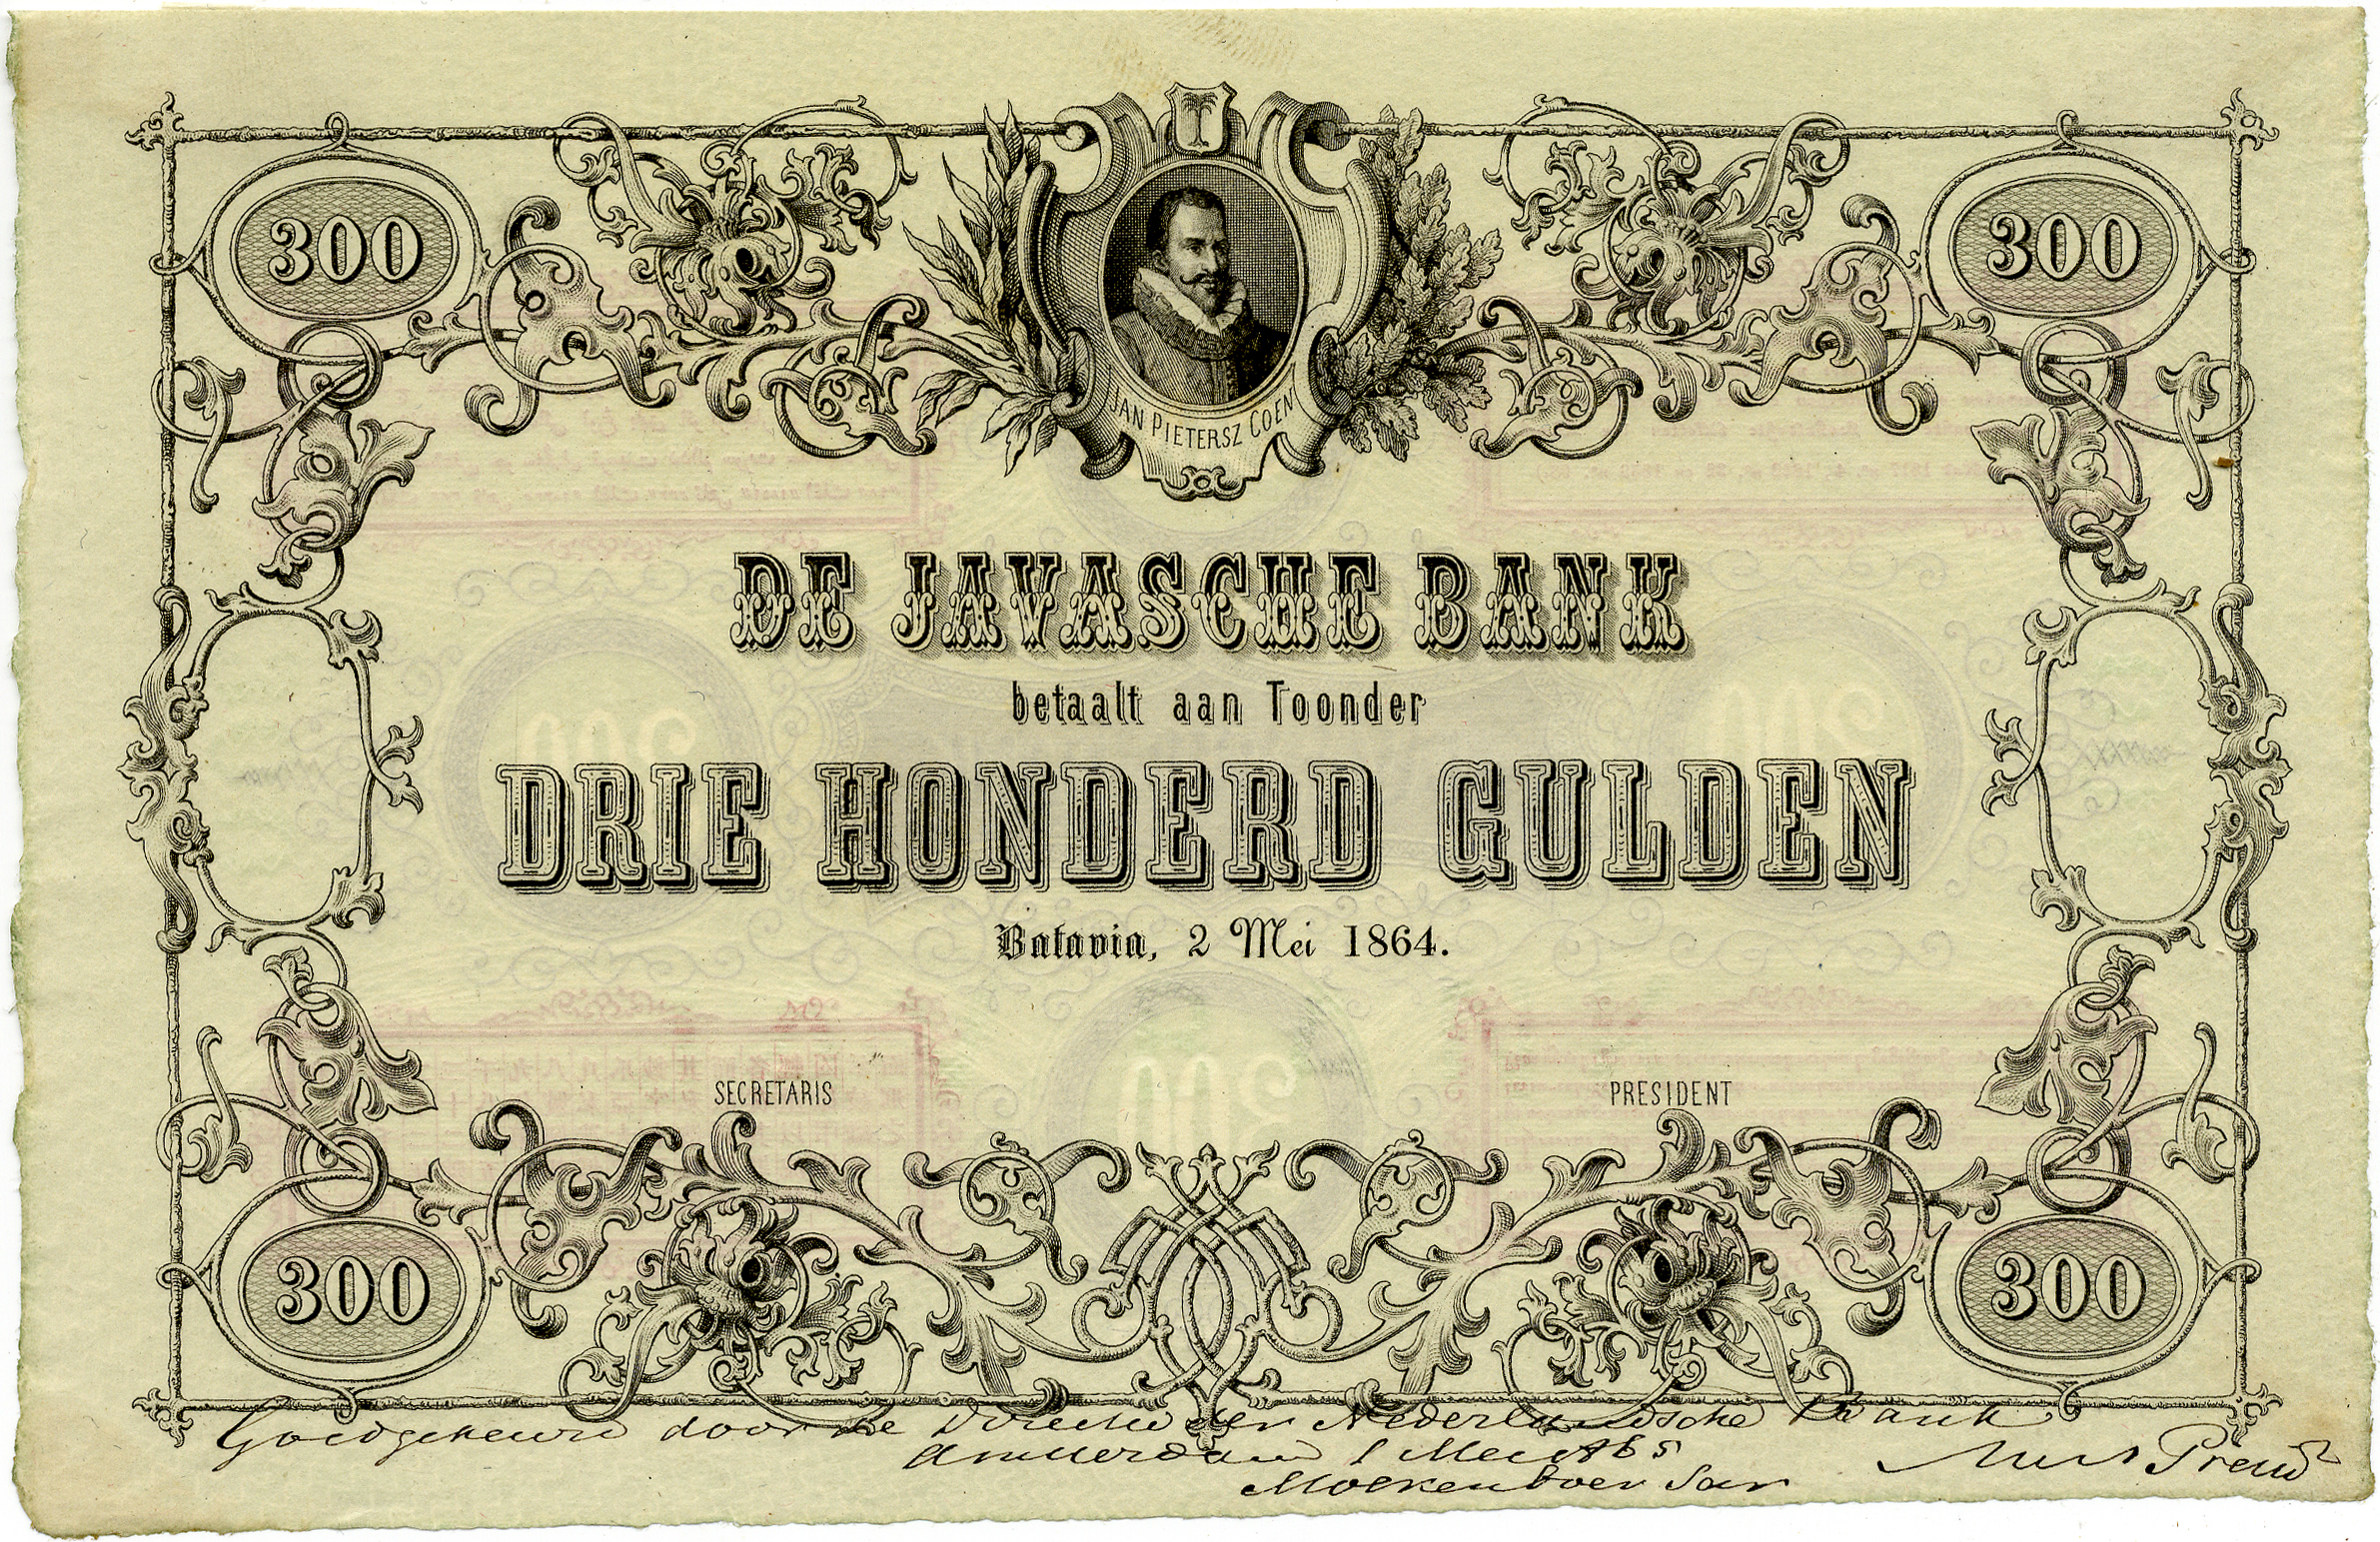 De Javasche Bank note issues 1864-1895